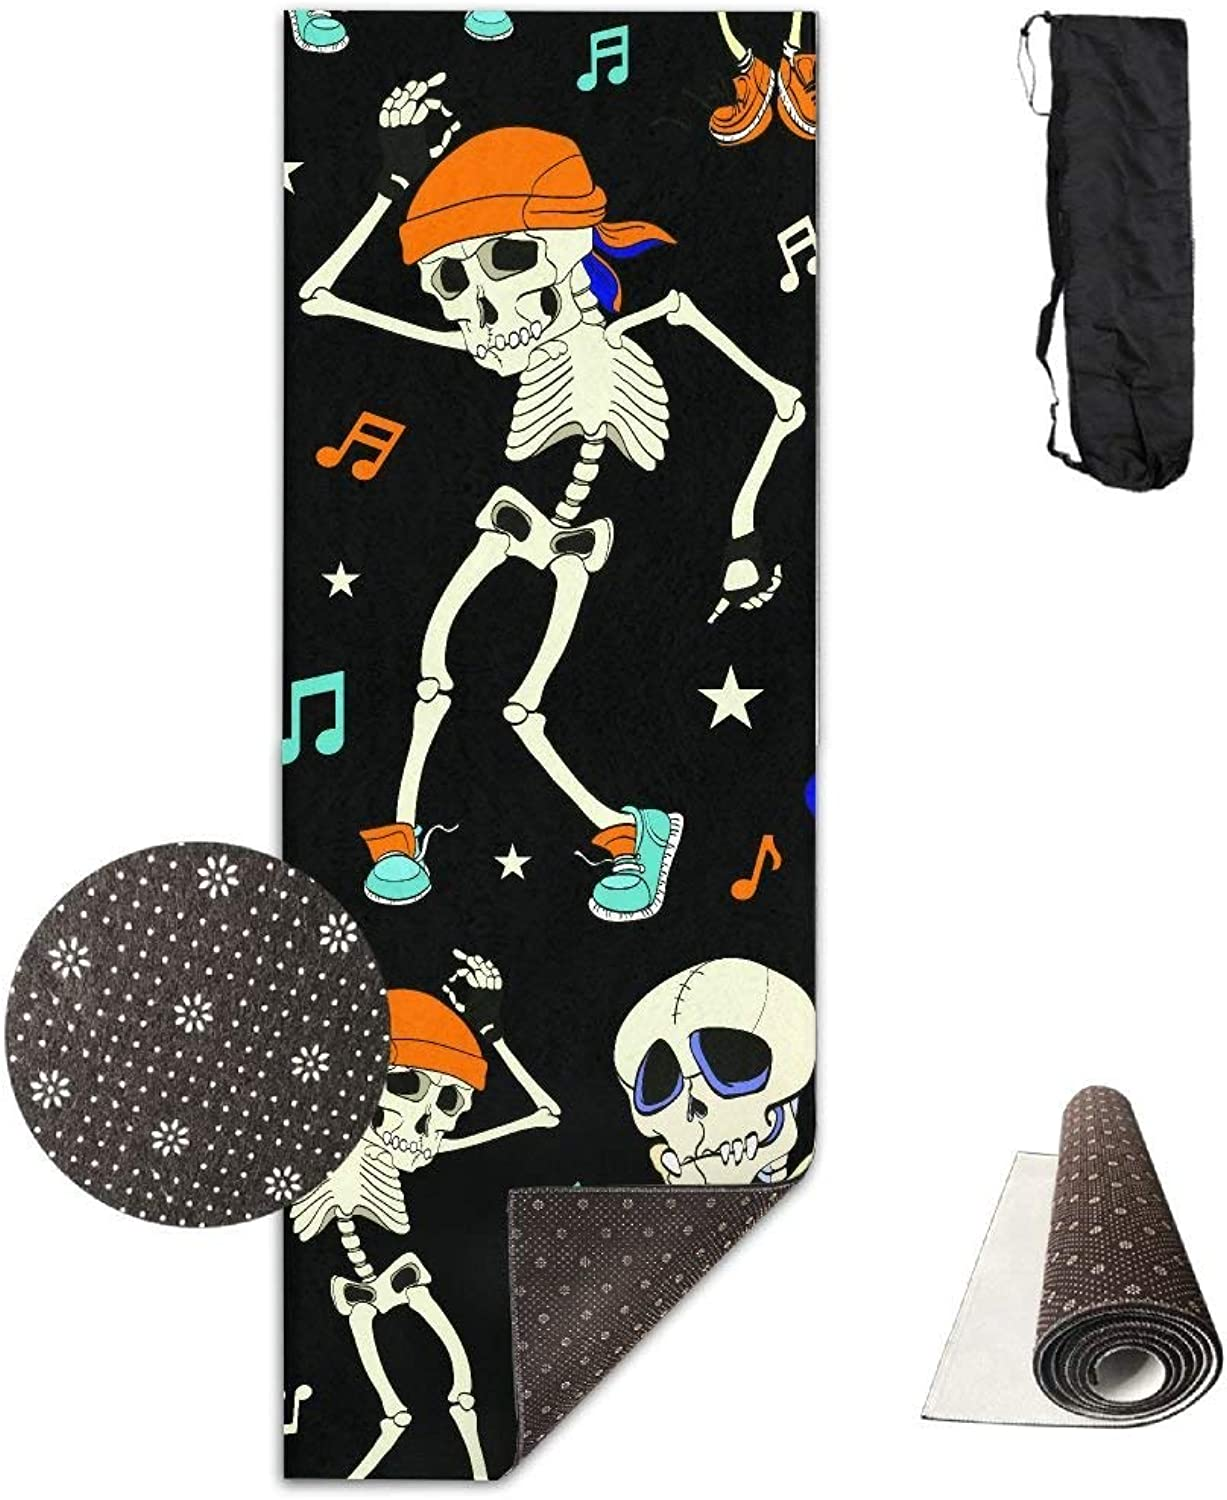 Dancing Skeletons Party Halloween Yoga Mat Towel for Bikram Hot Yoga, Yoga and Pilates, Paddle Board Yoga, Sports, Exercise, Fitness Towel